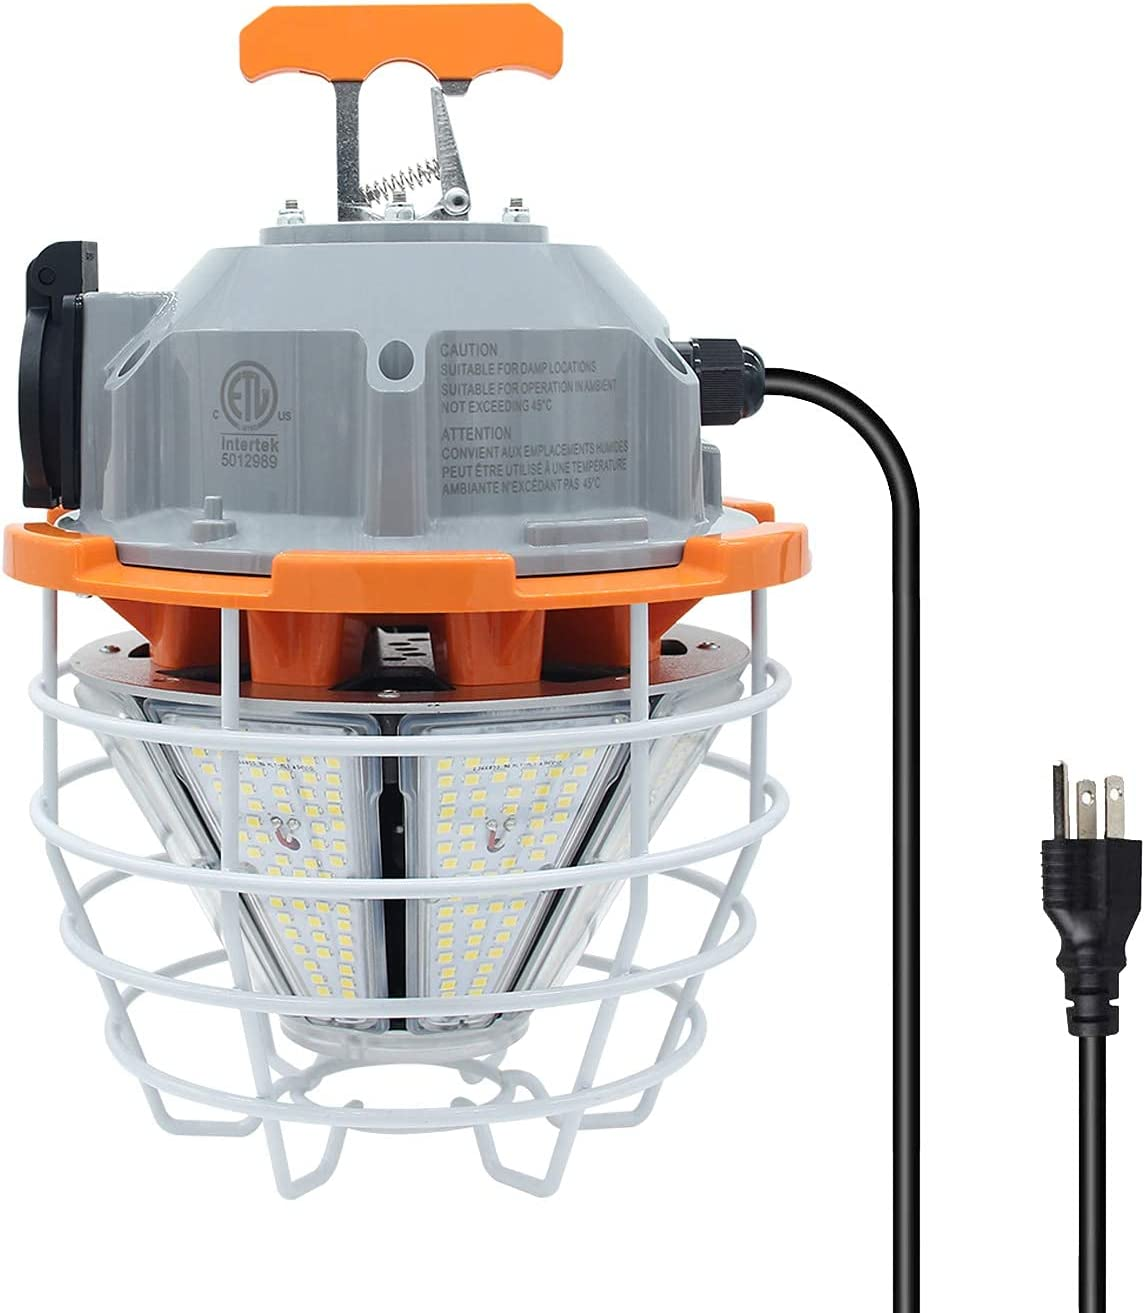 150 Watts LED Temporary Work 5000K Light Limited price Daylight White Max 84% OFF Fixture